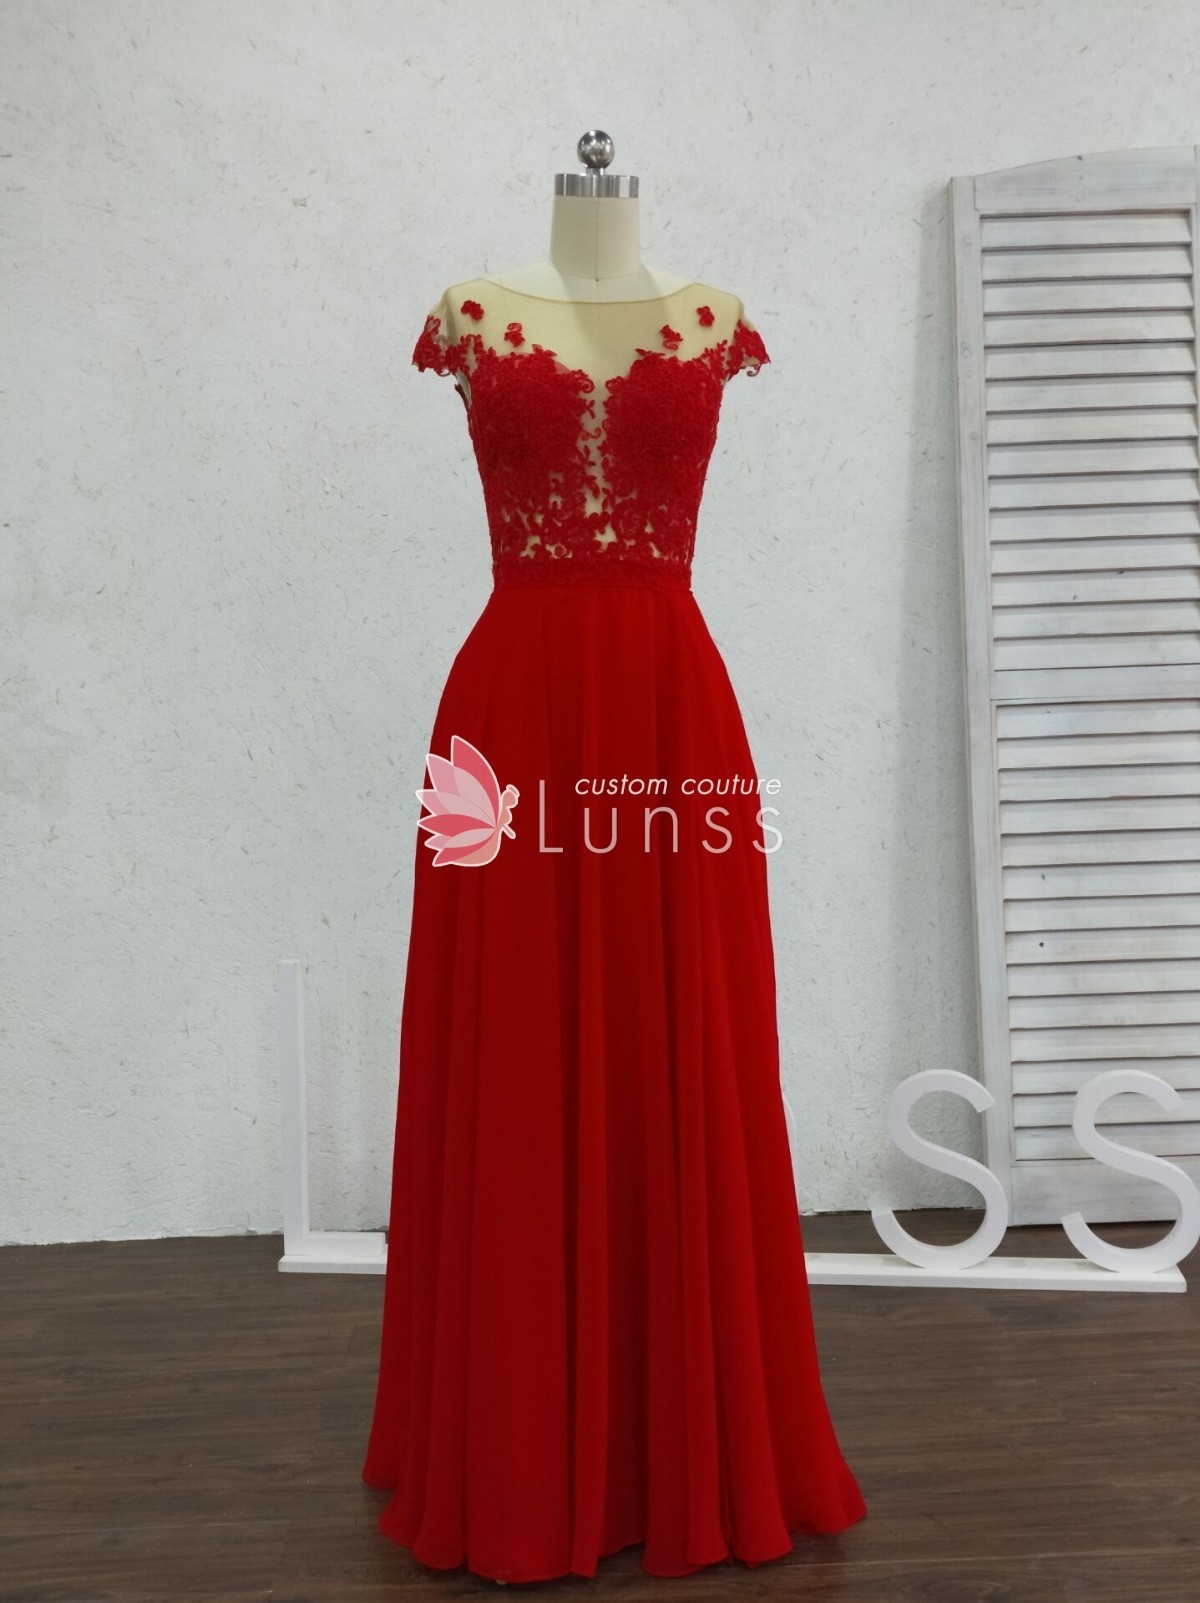 cd43f9c439f Red See-through Lace Open Back Custom Graduation Prom Dress with ...